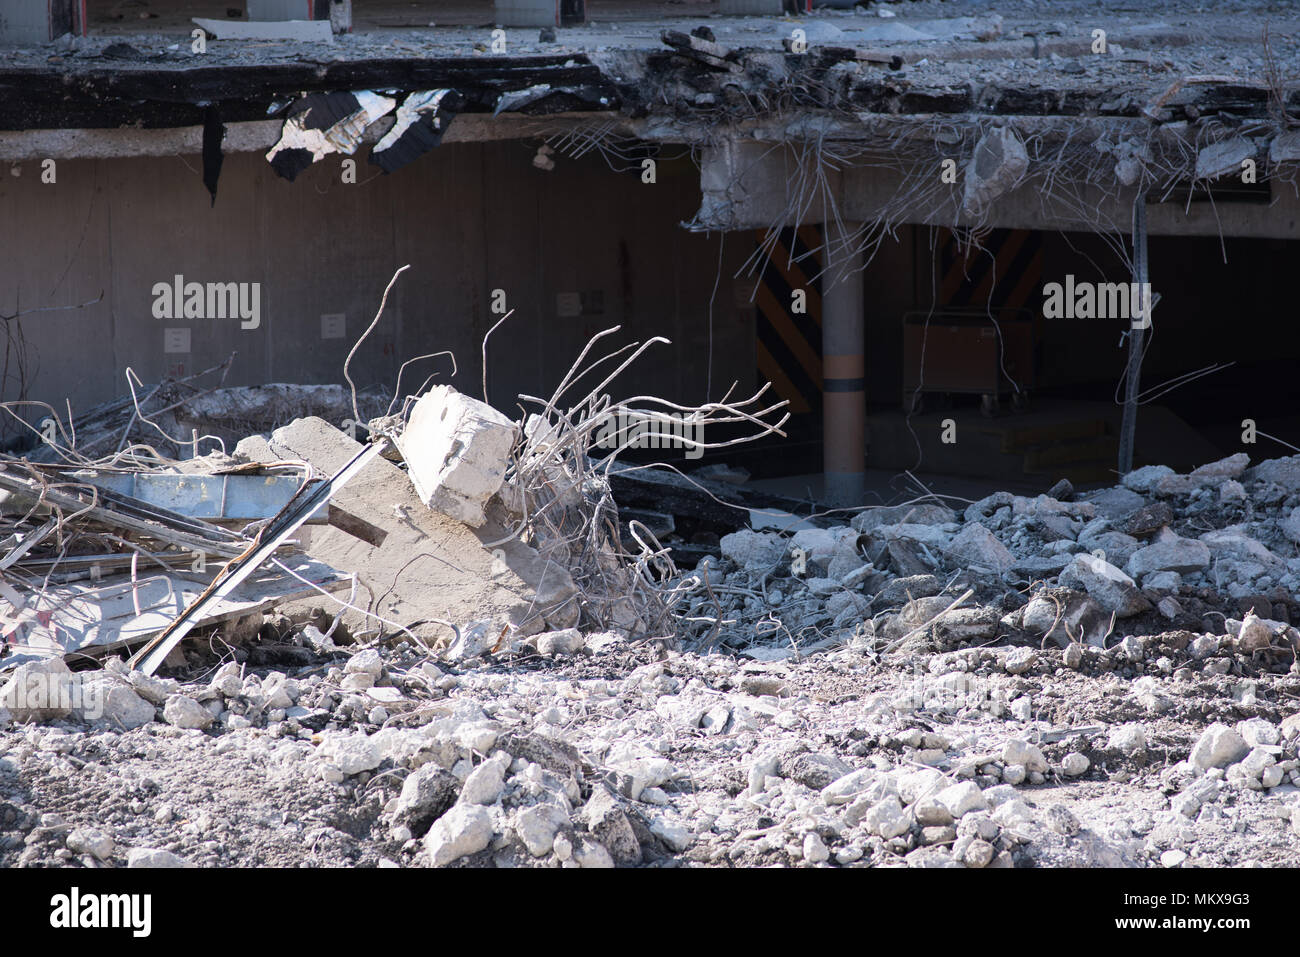 demolition of a building - Stock Image